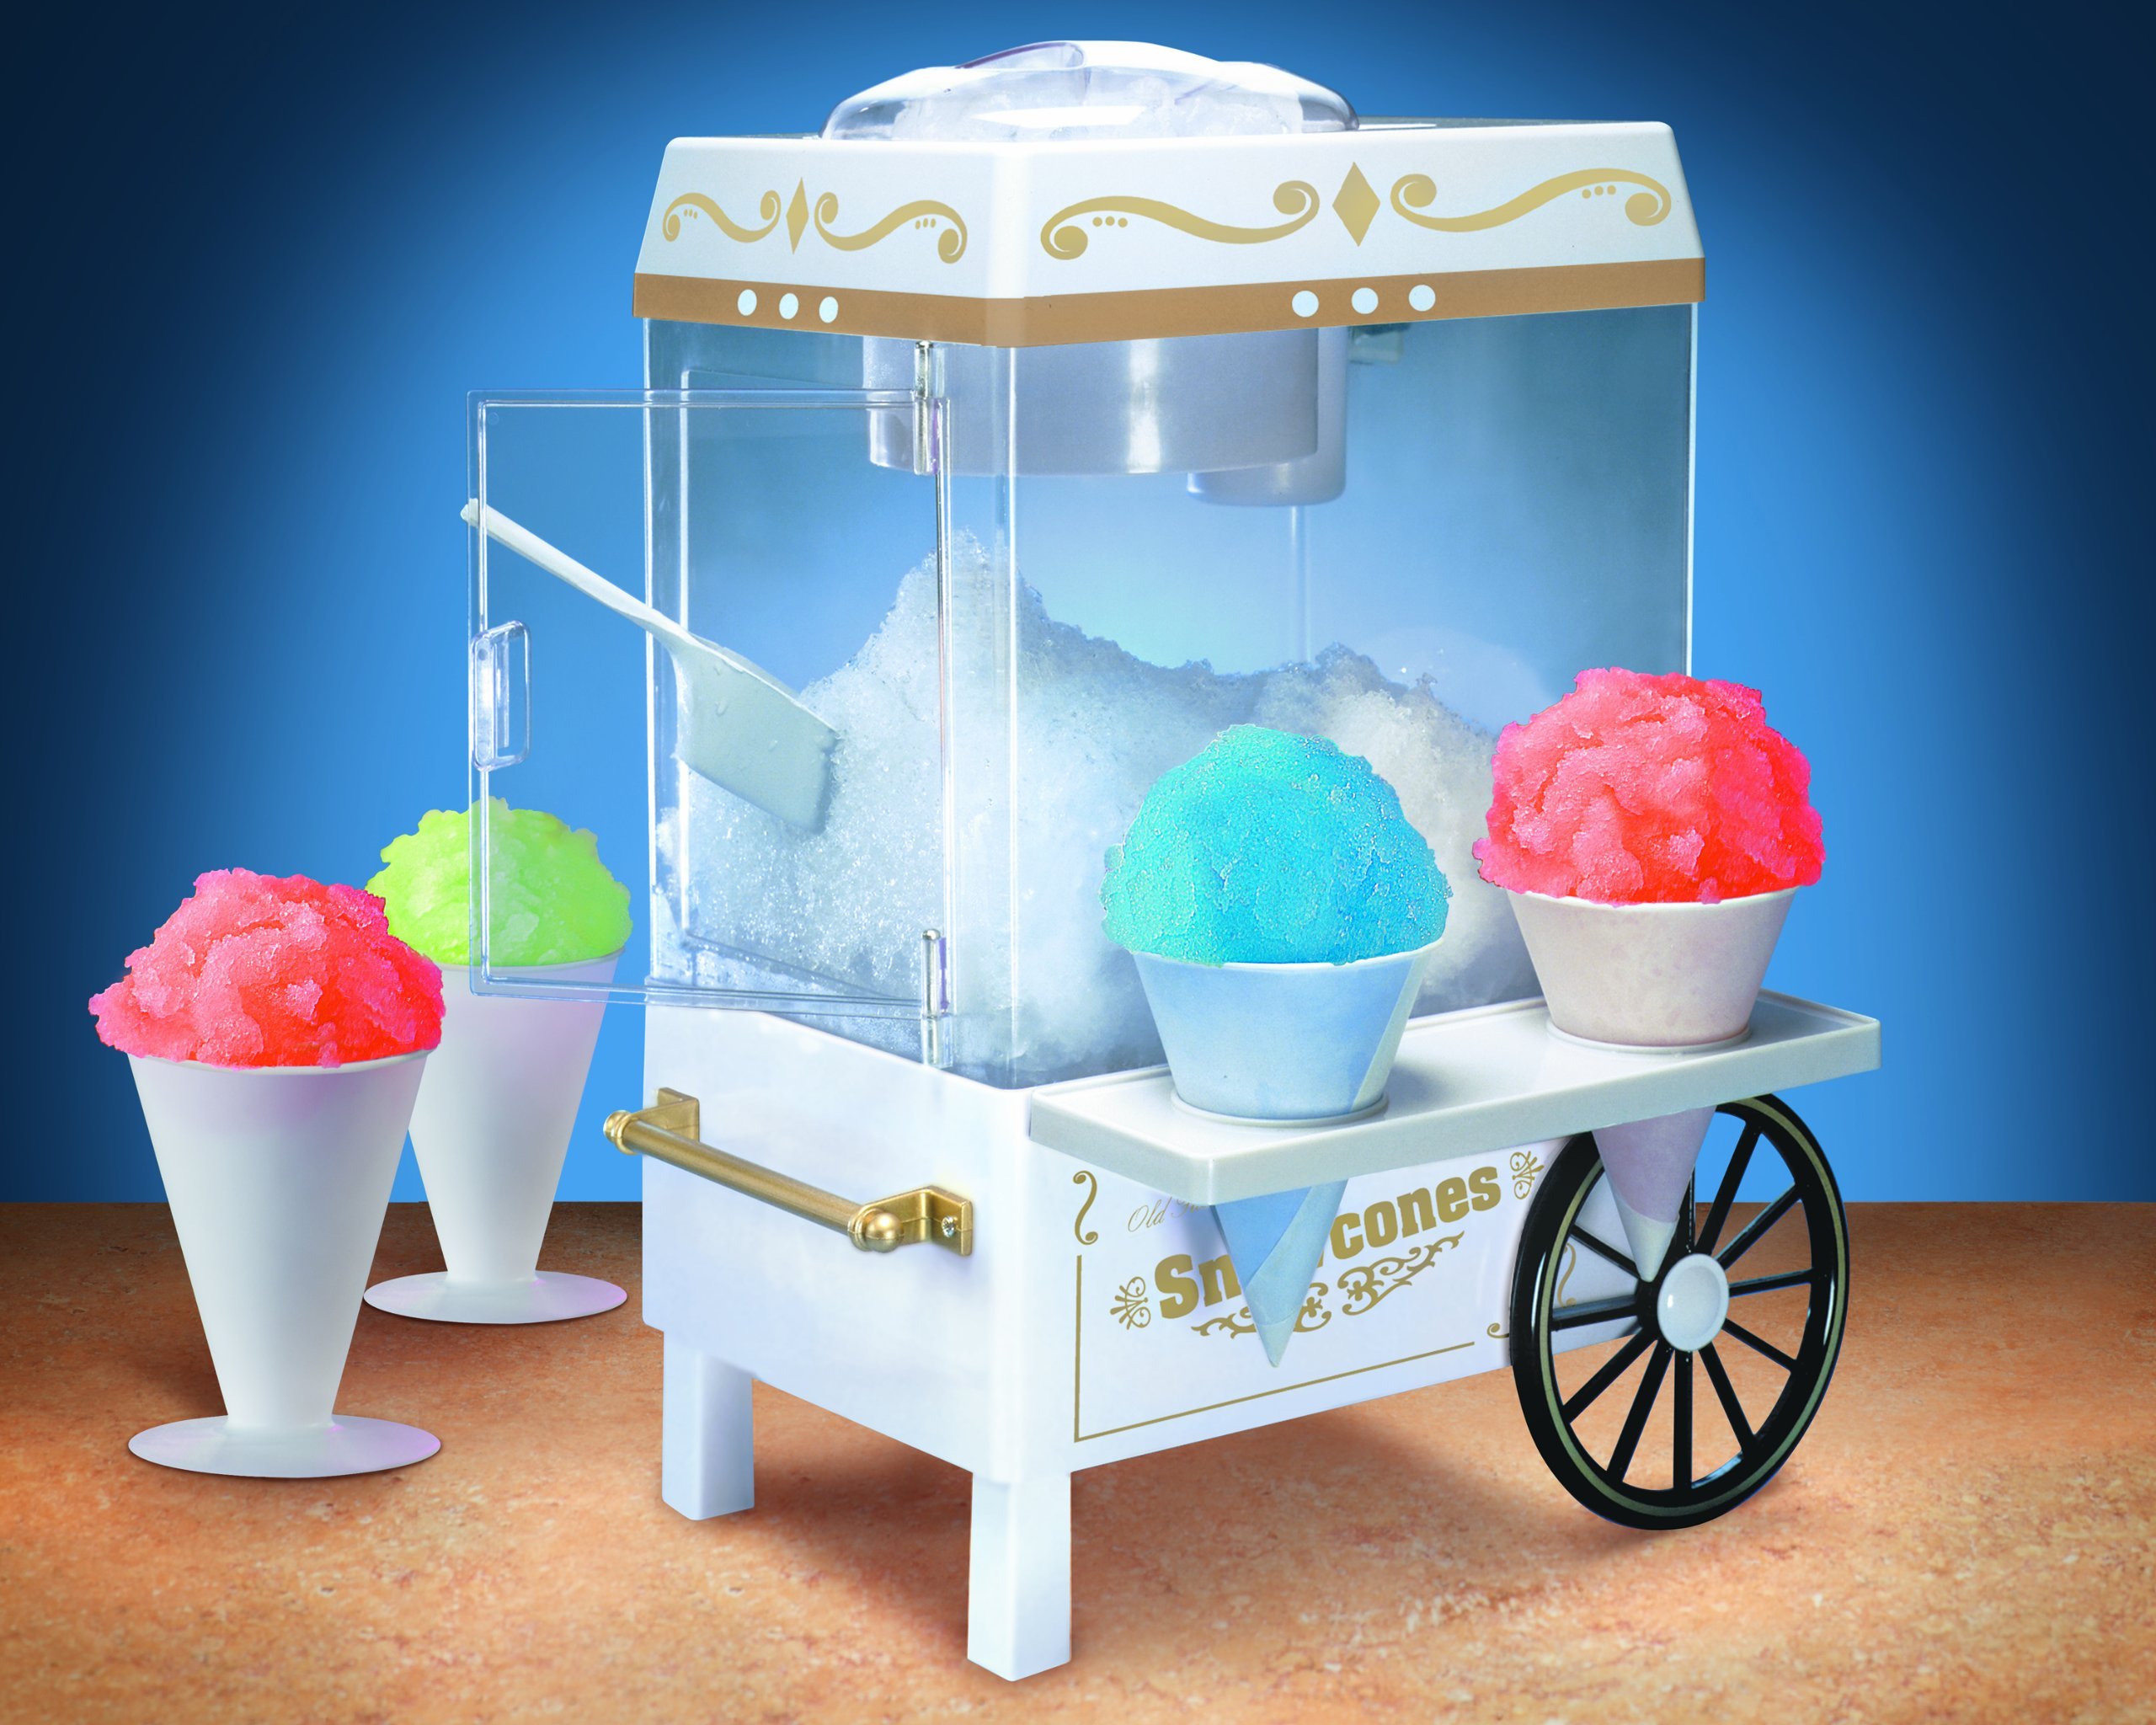 Modeled after the antique snowcone carts of the early 1900′s, this nostalgic countertop snow cone maker shaves ice cubes into snow.